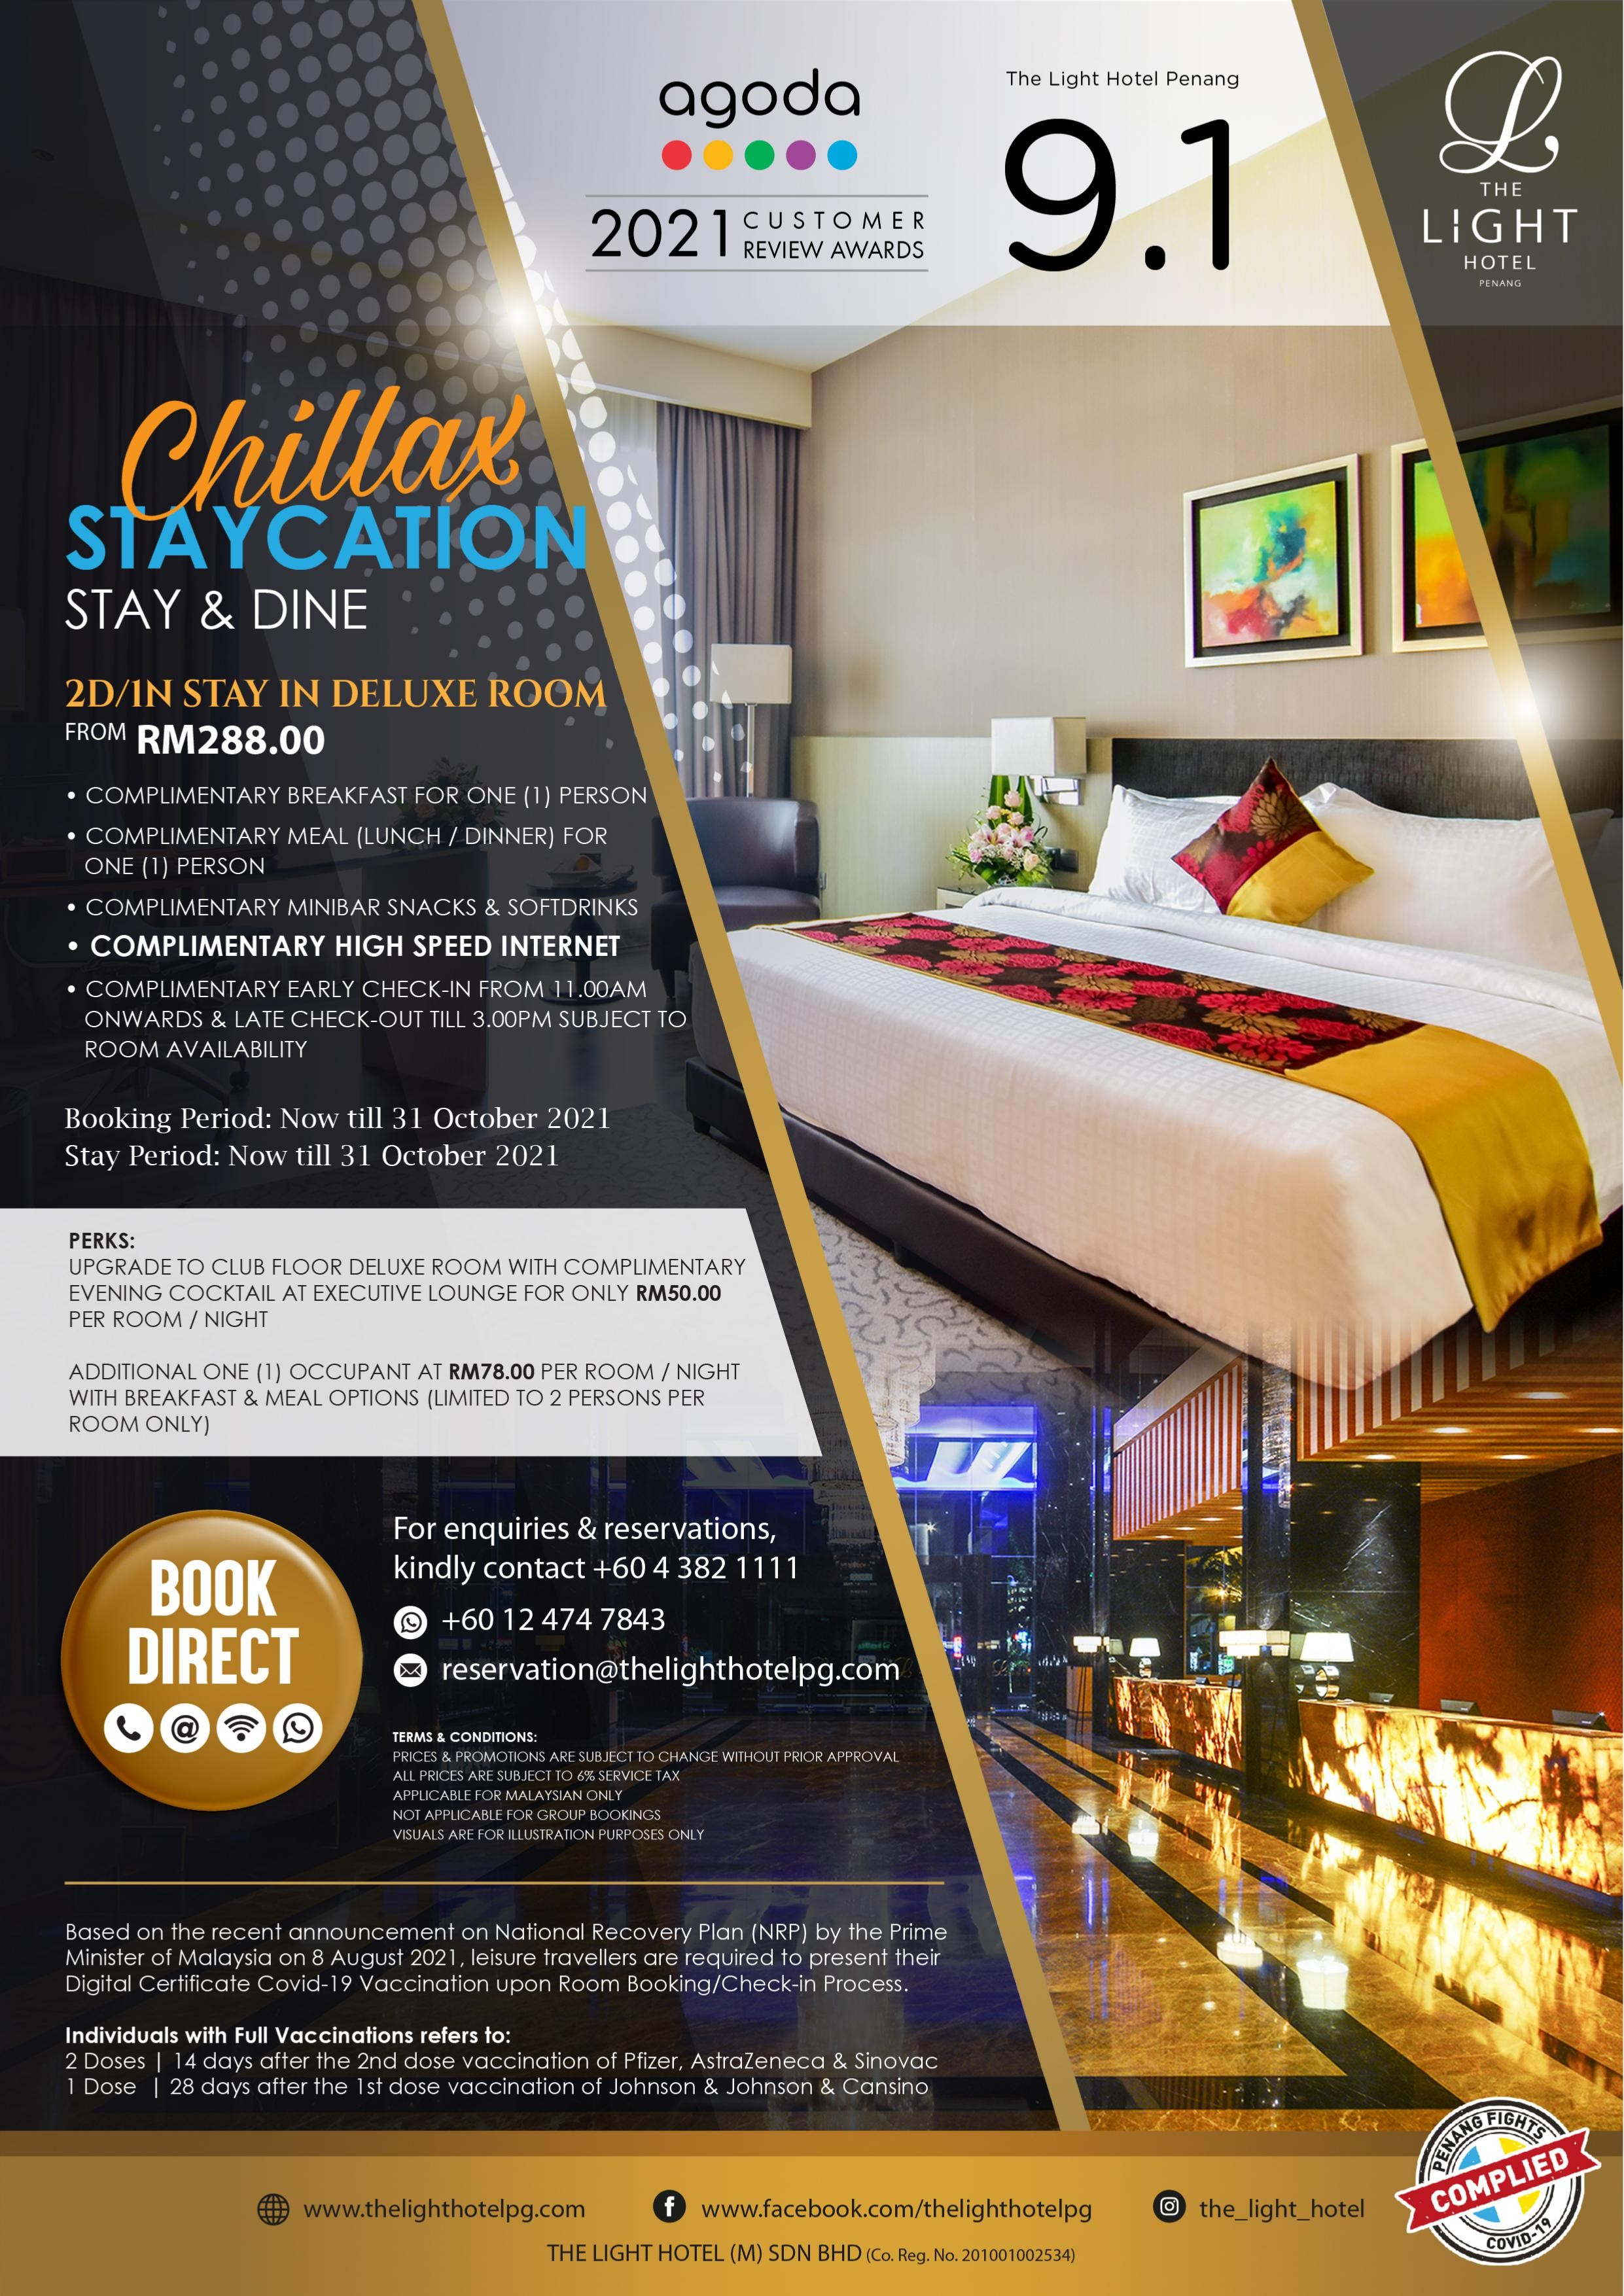 Chillax Staycation by The Light Hotel